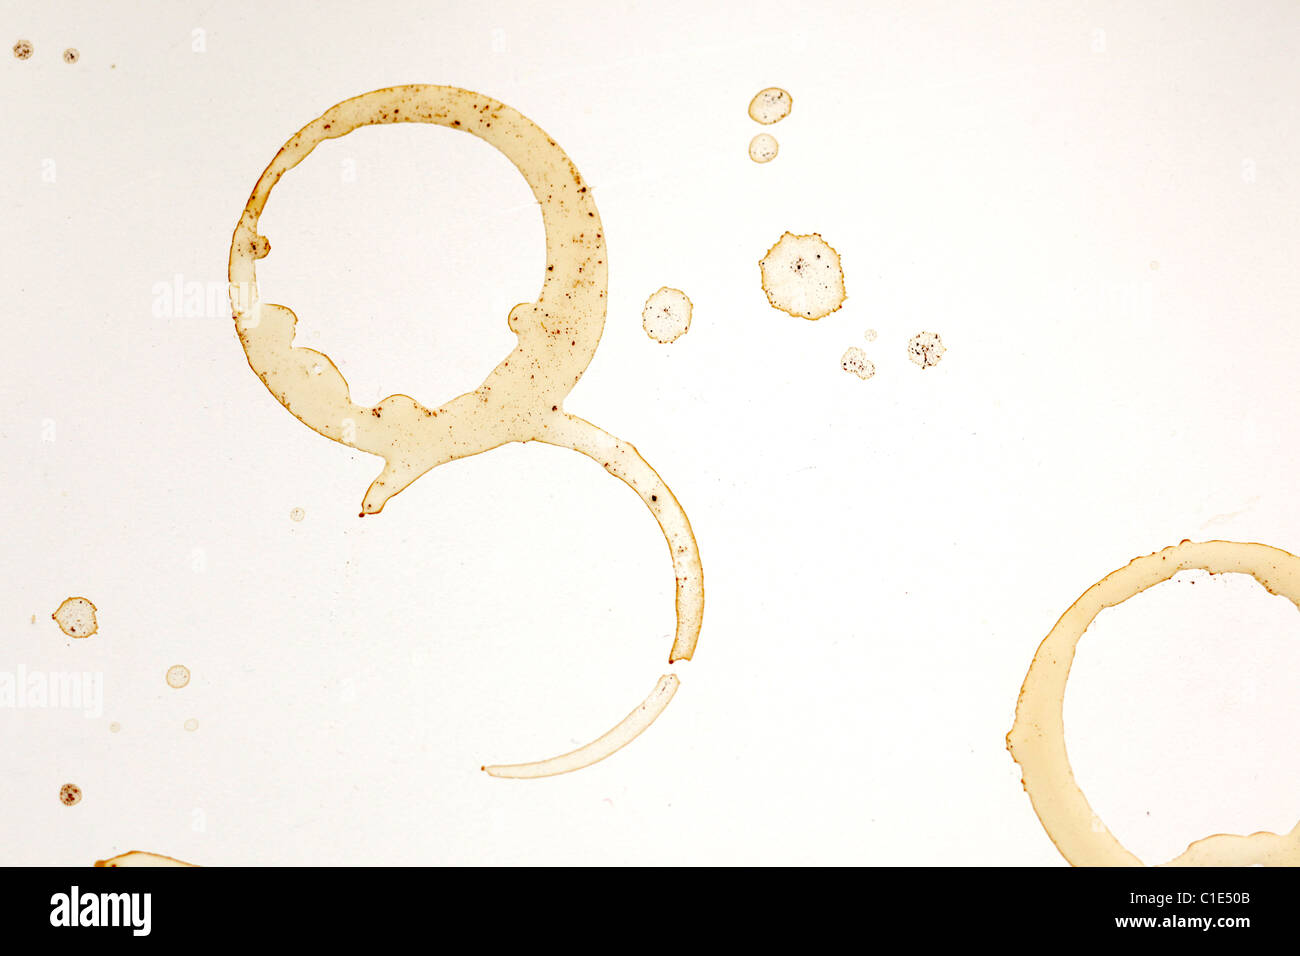 coffee stains and rings on white table - Stock Image